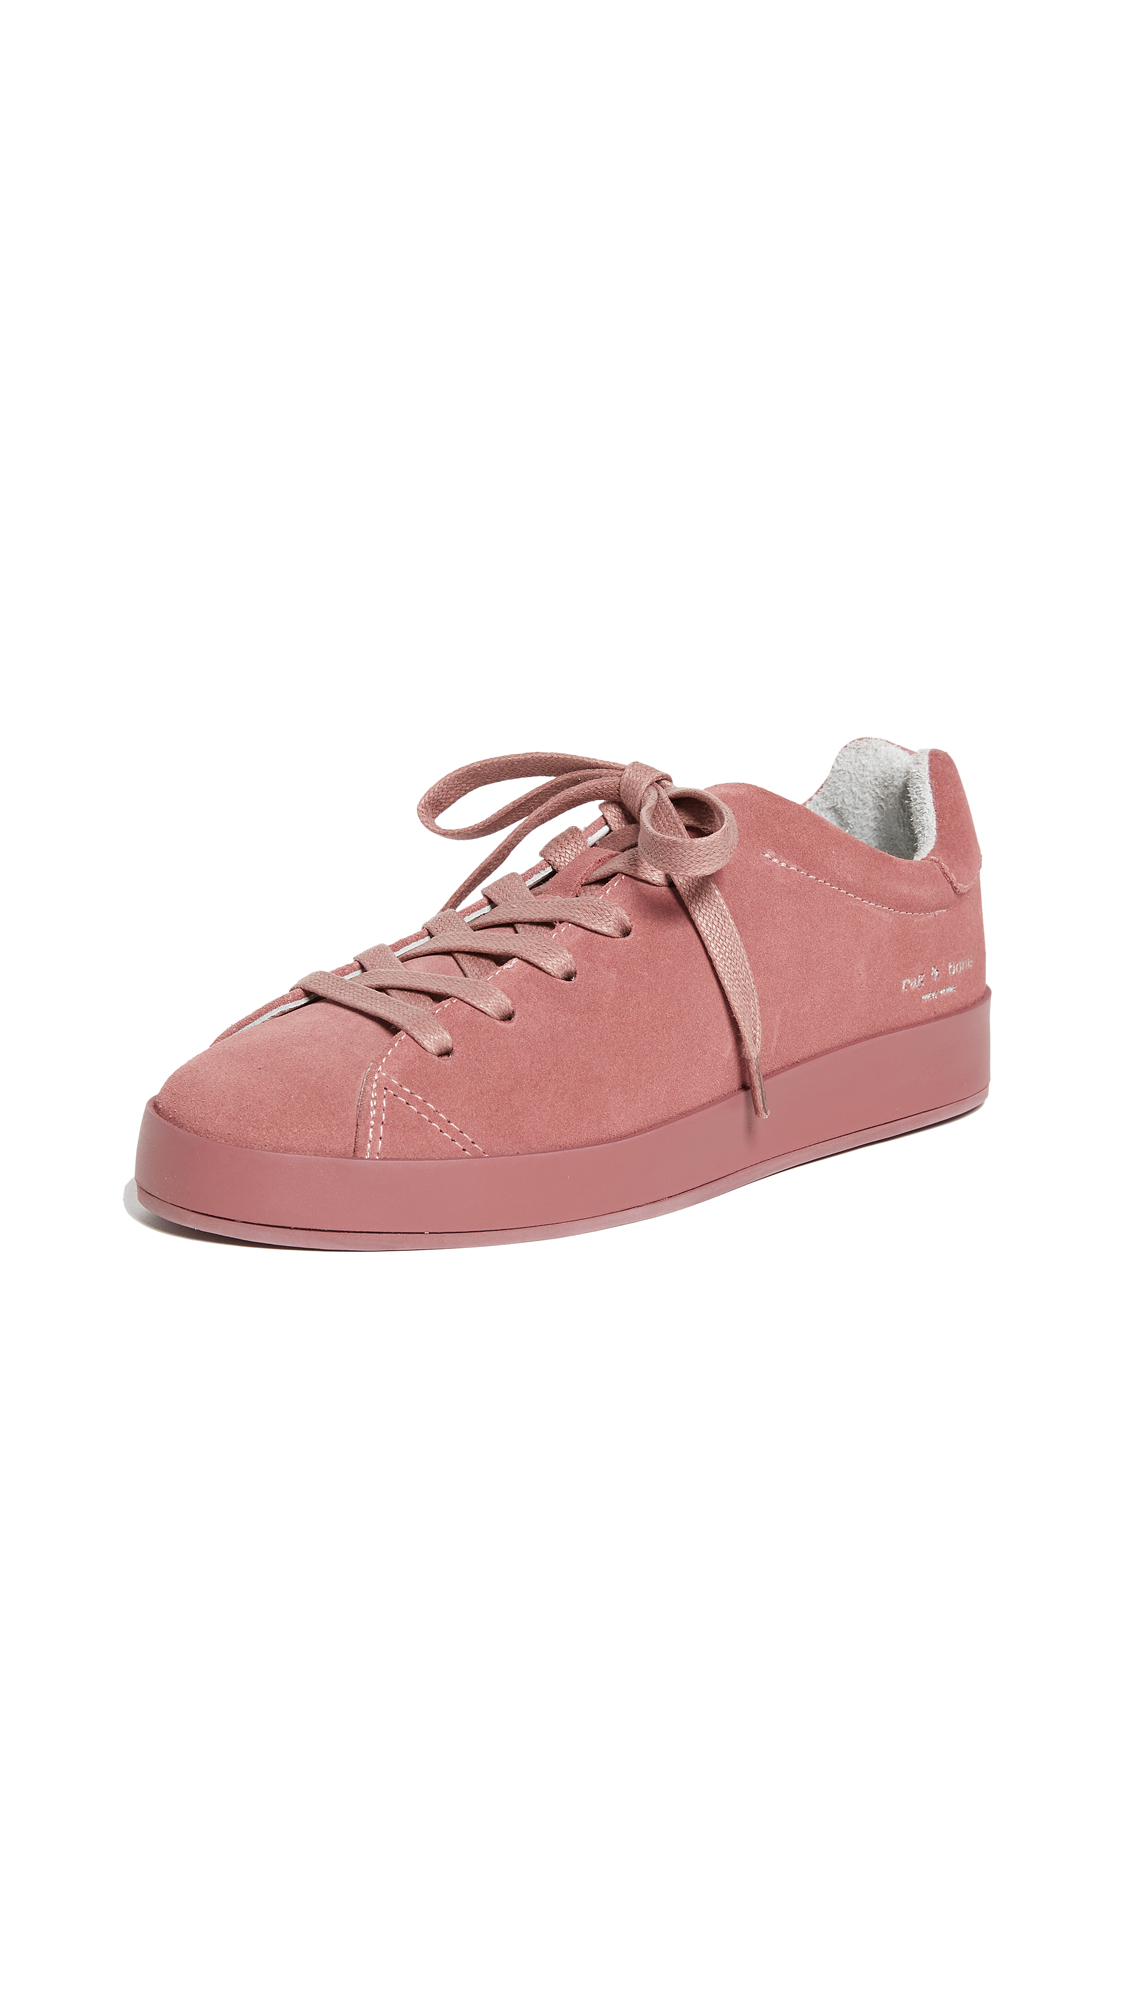 Photo of Rag & Bone RB1 Low Sneakers - buy Rag & Bone shoes